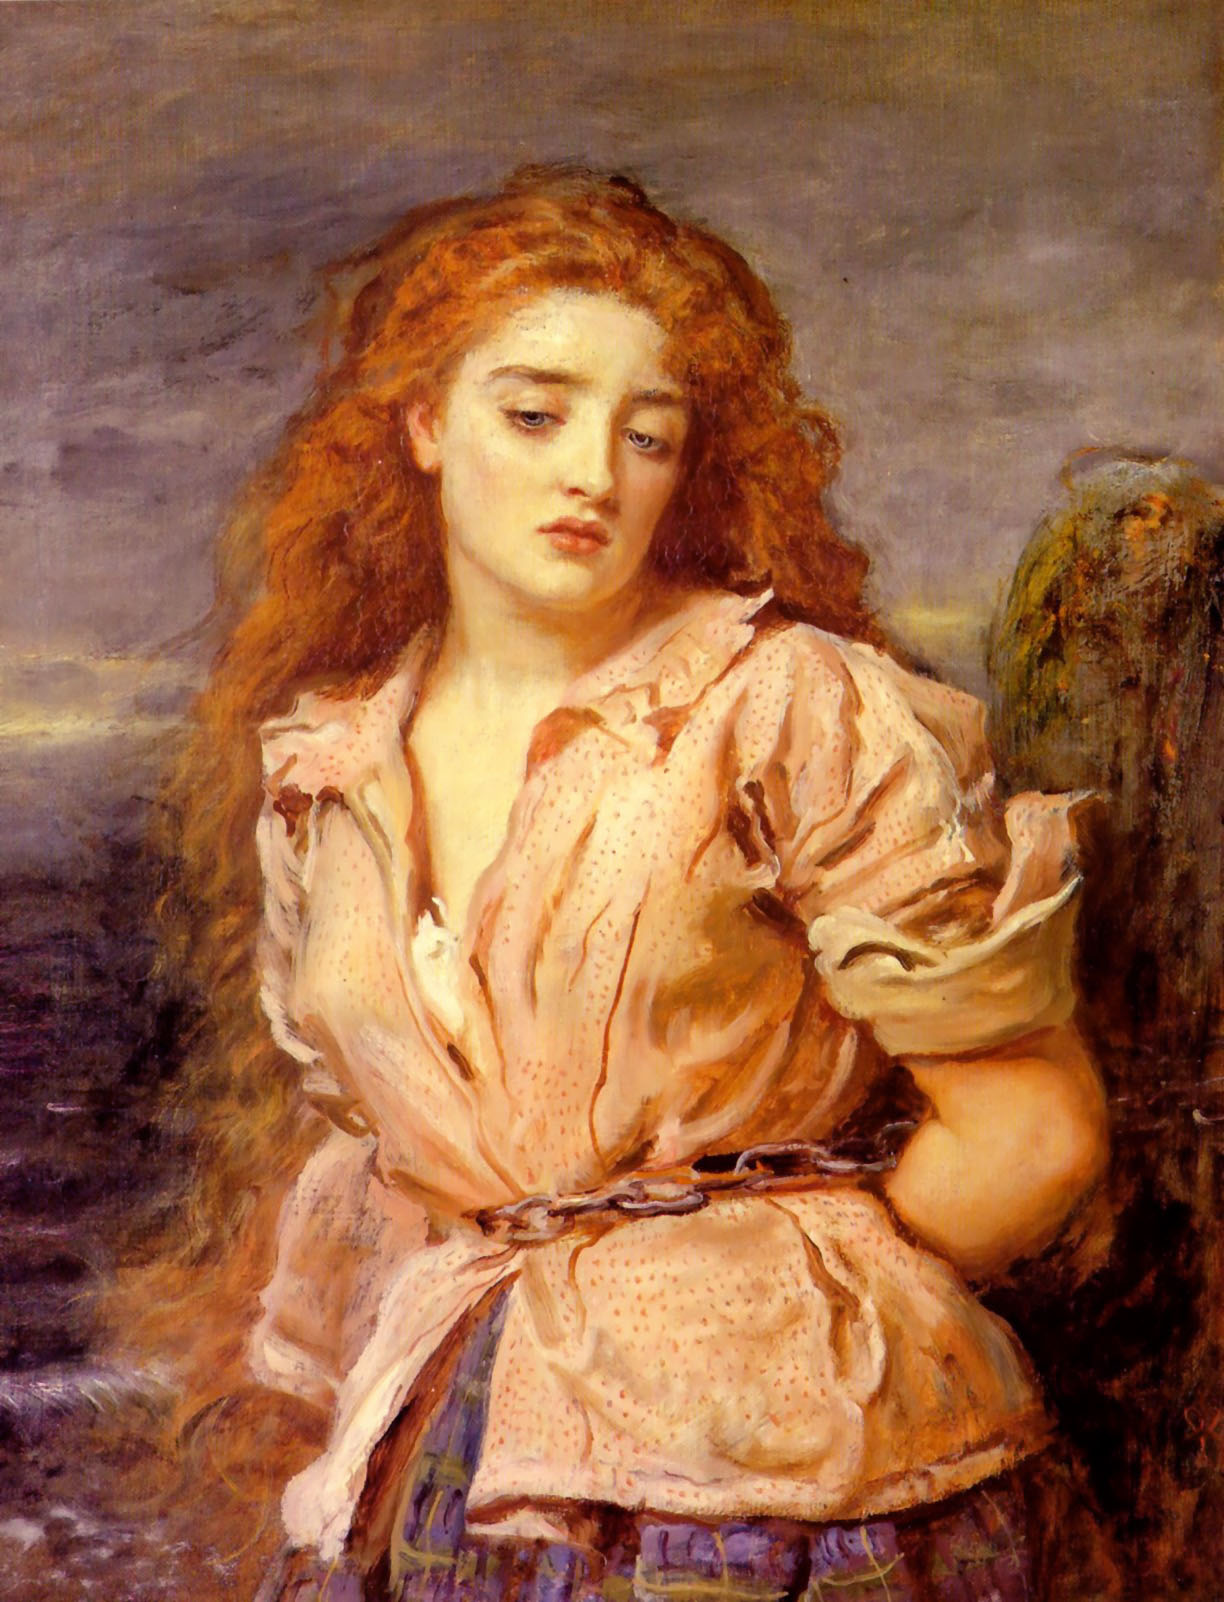 http://uploads5.wikipaintings.org/images/john-everett-millais/the-matyr-of-the-solway.jpg